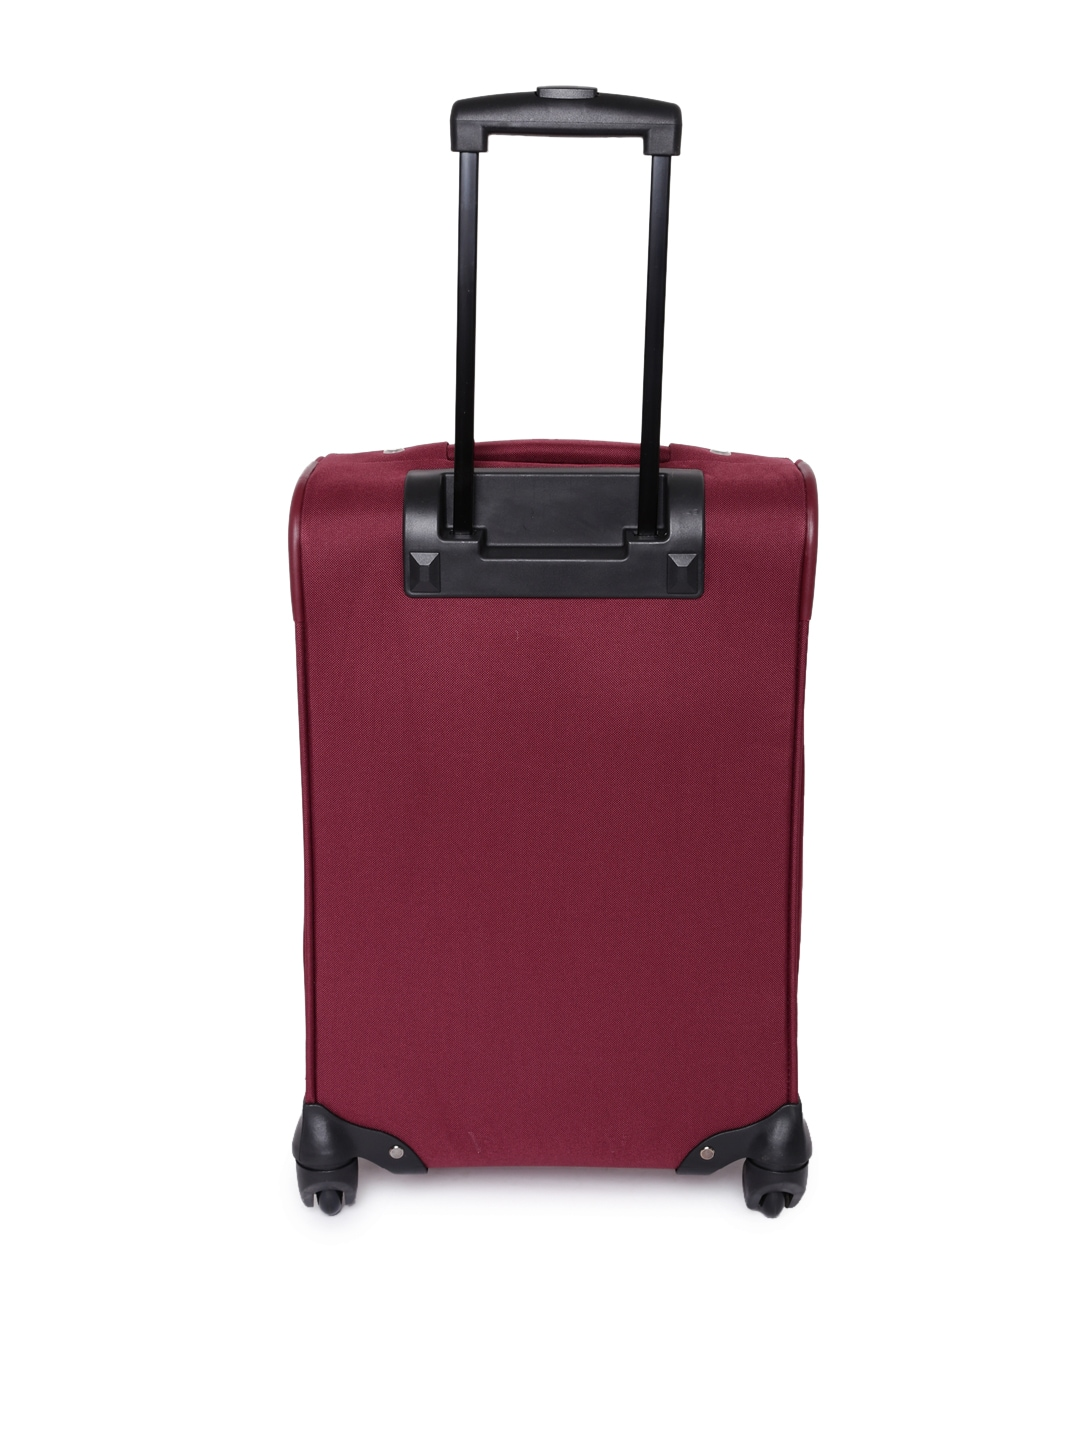 american tourister luggage bags price